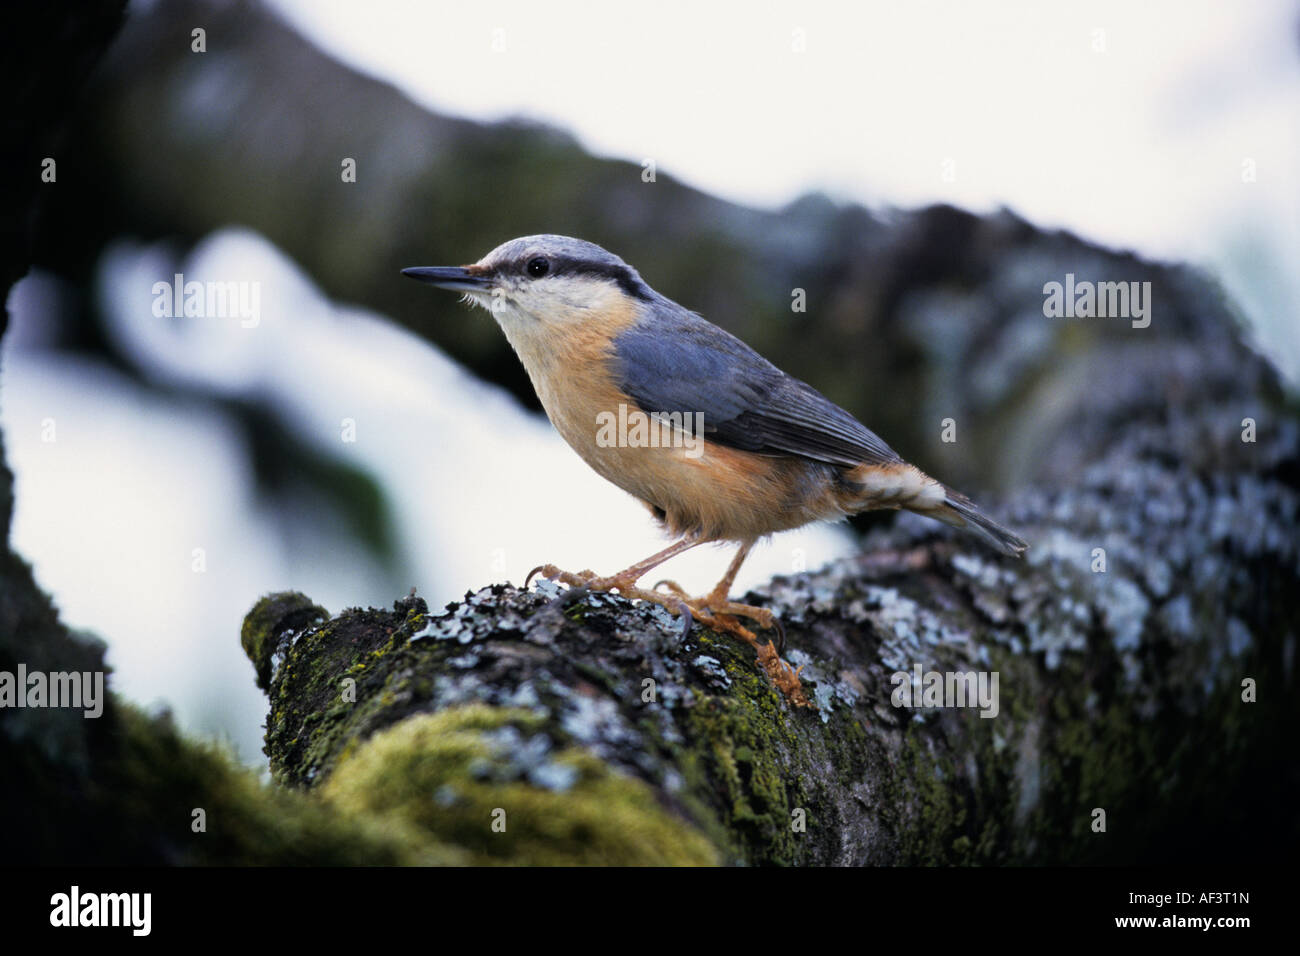 Nuthatch (Sitta europaea) standing on mossy branch - Stock Image